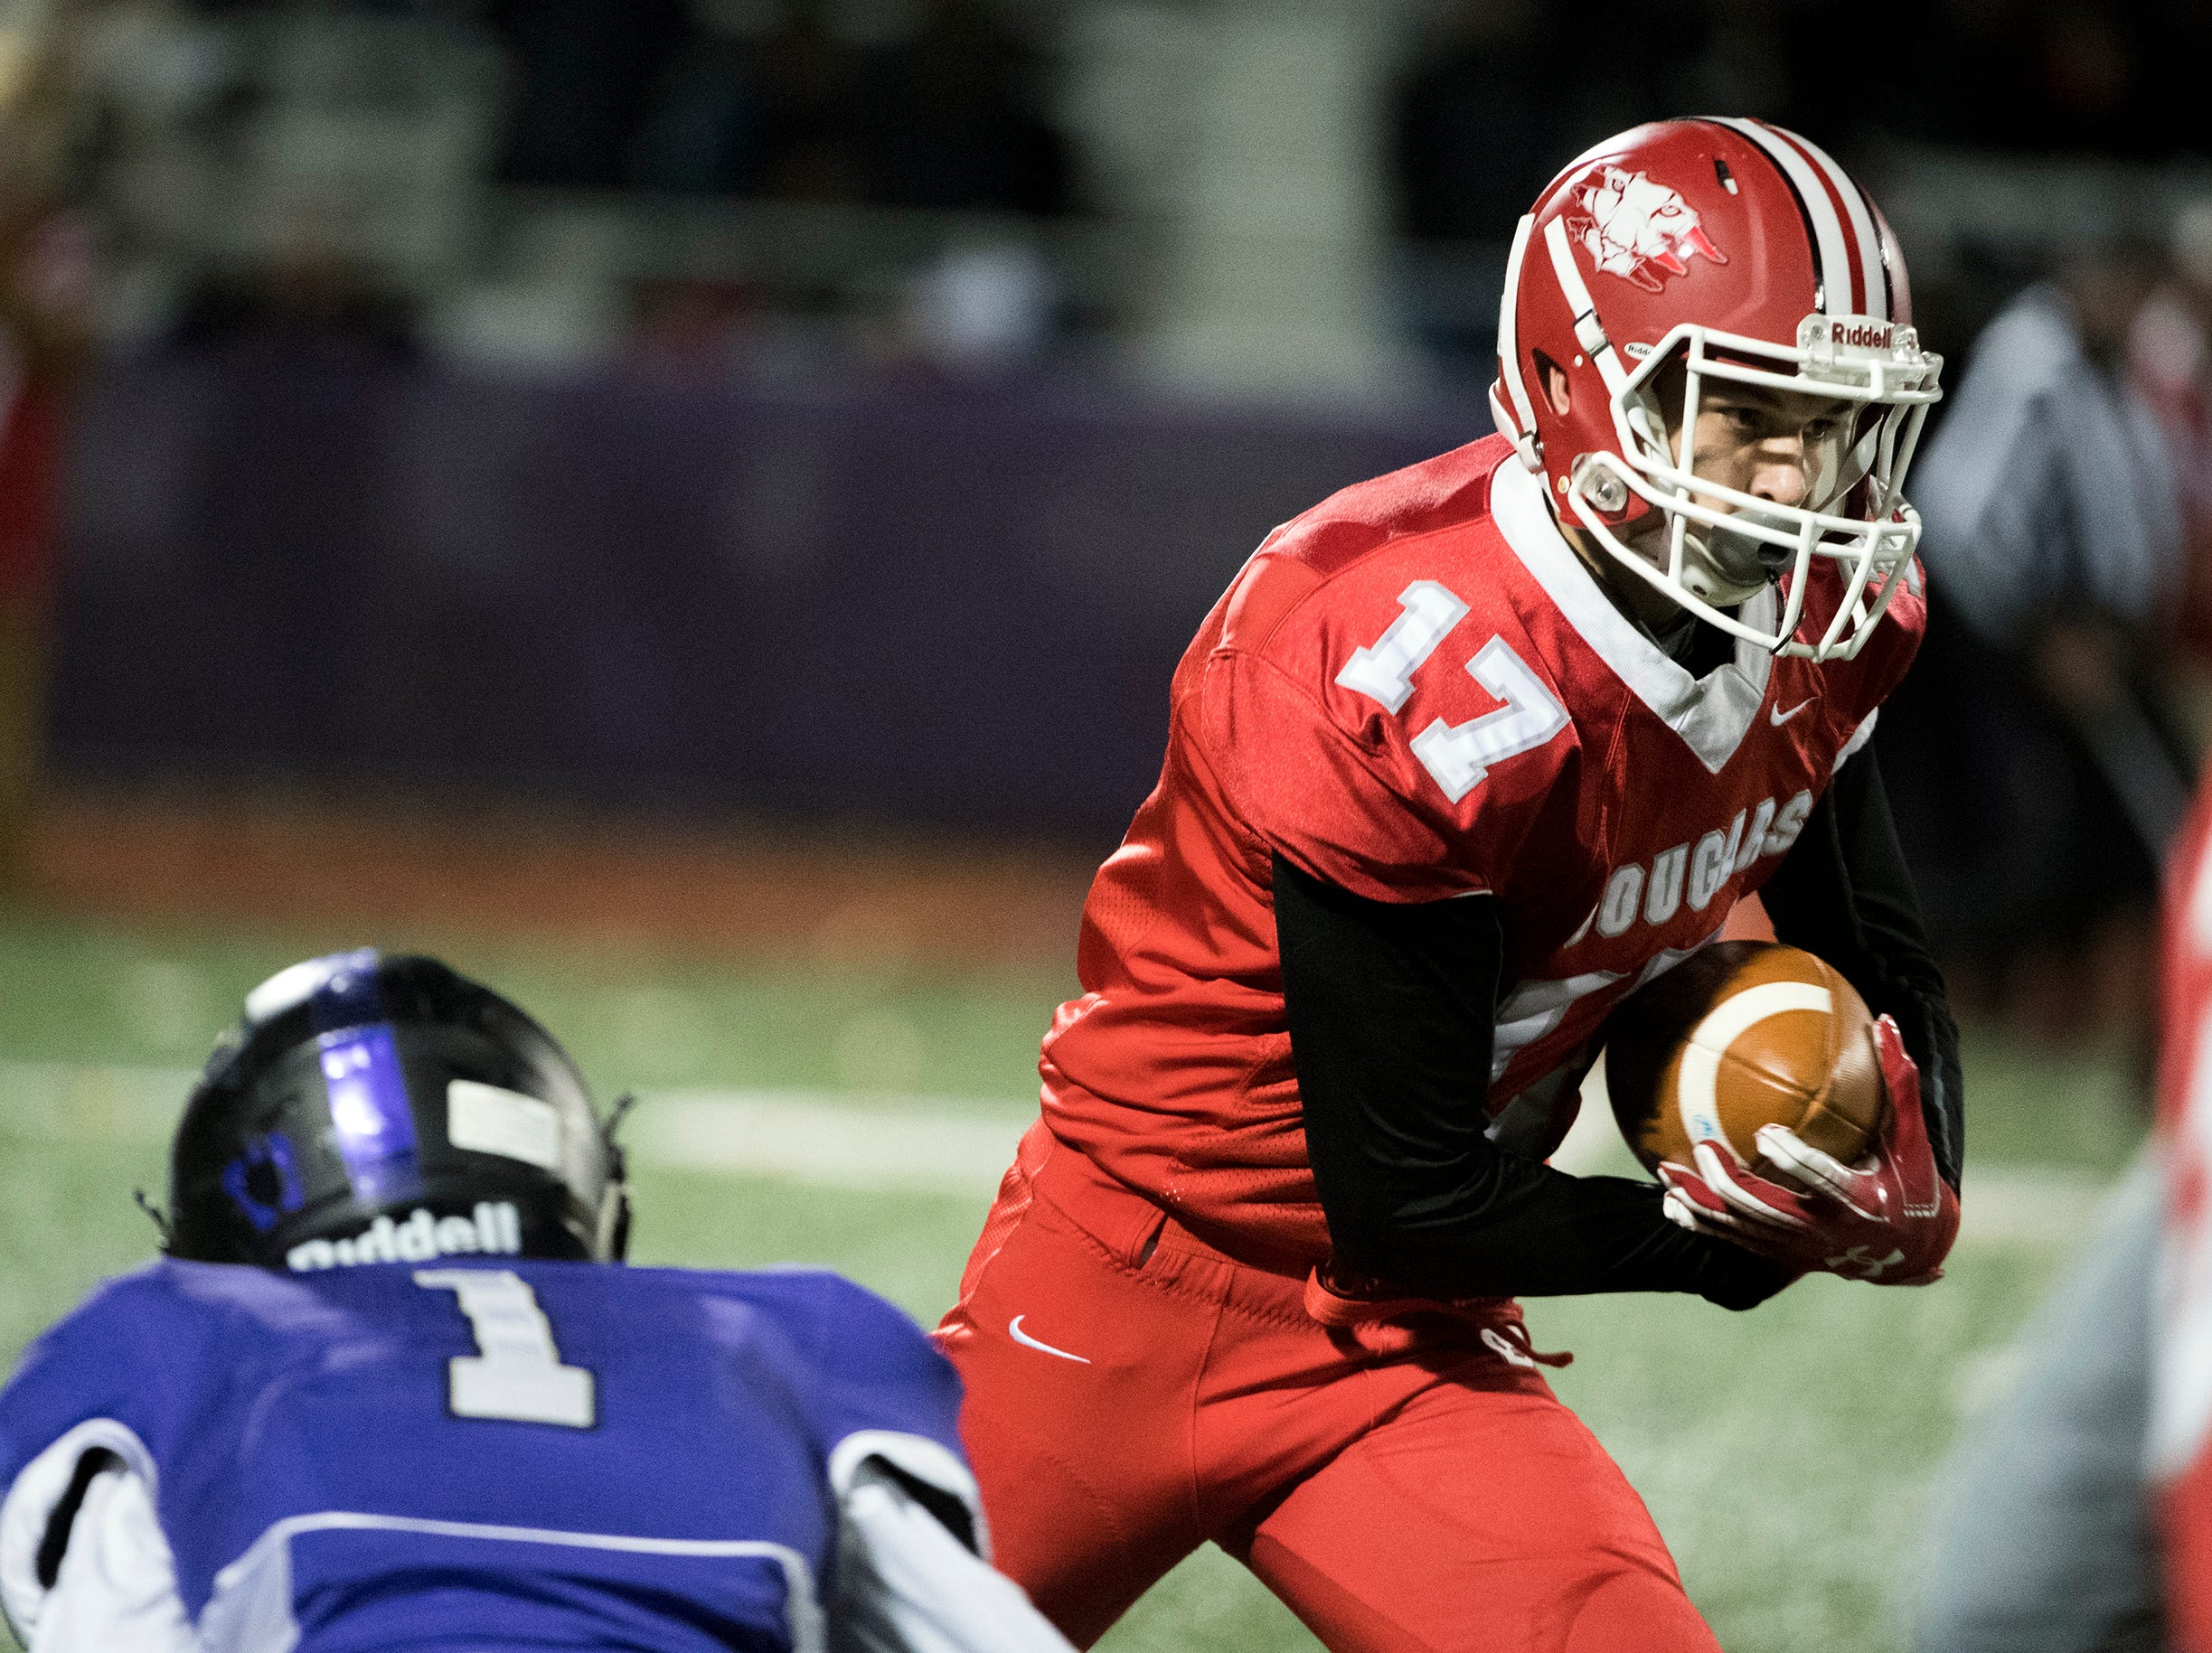 East's Sean Welsh (17) carries the ball during an annual East-West game Wednesday, Nov. 21, 2018 at Cherry Hill West High School in Cherry Hill, N.J. West won 22-7.